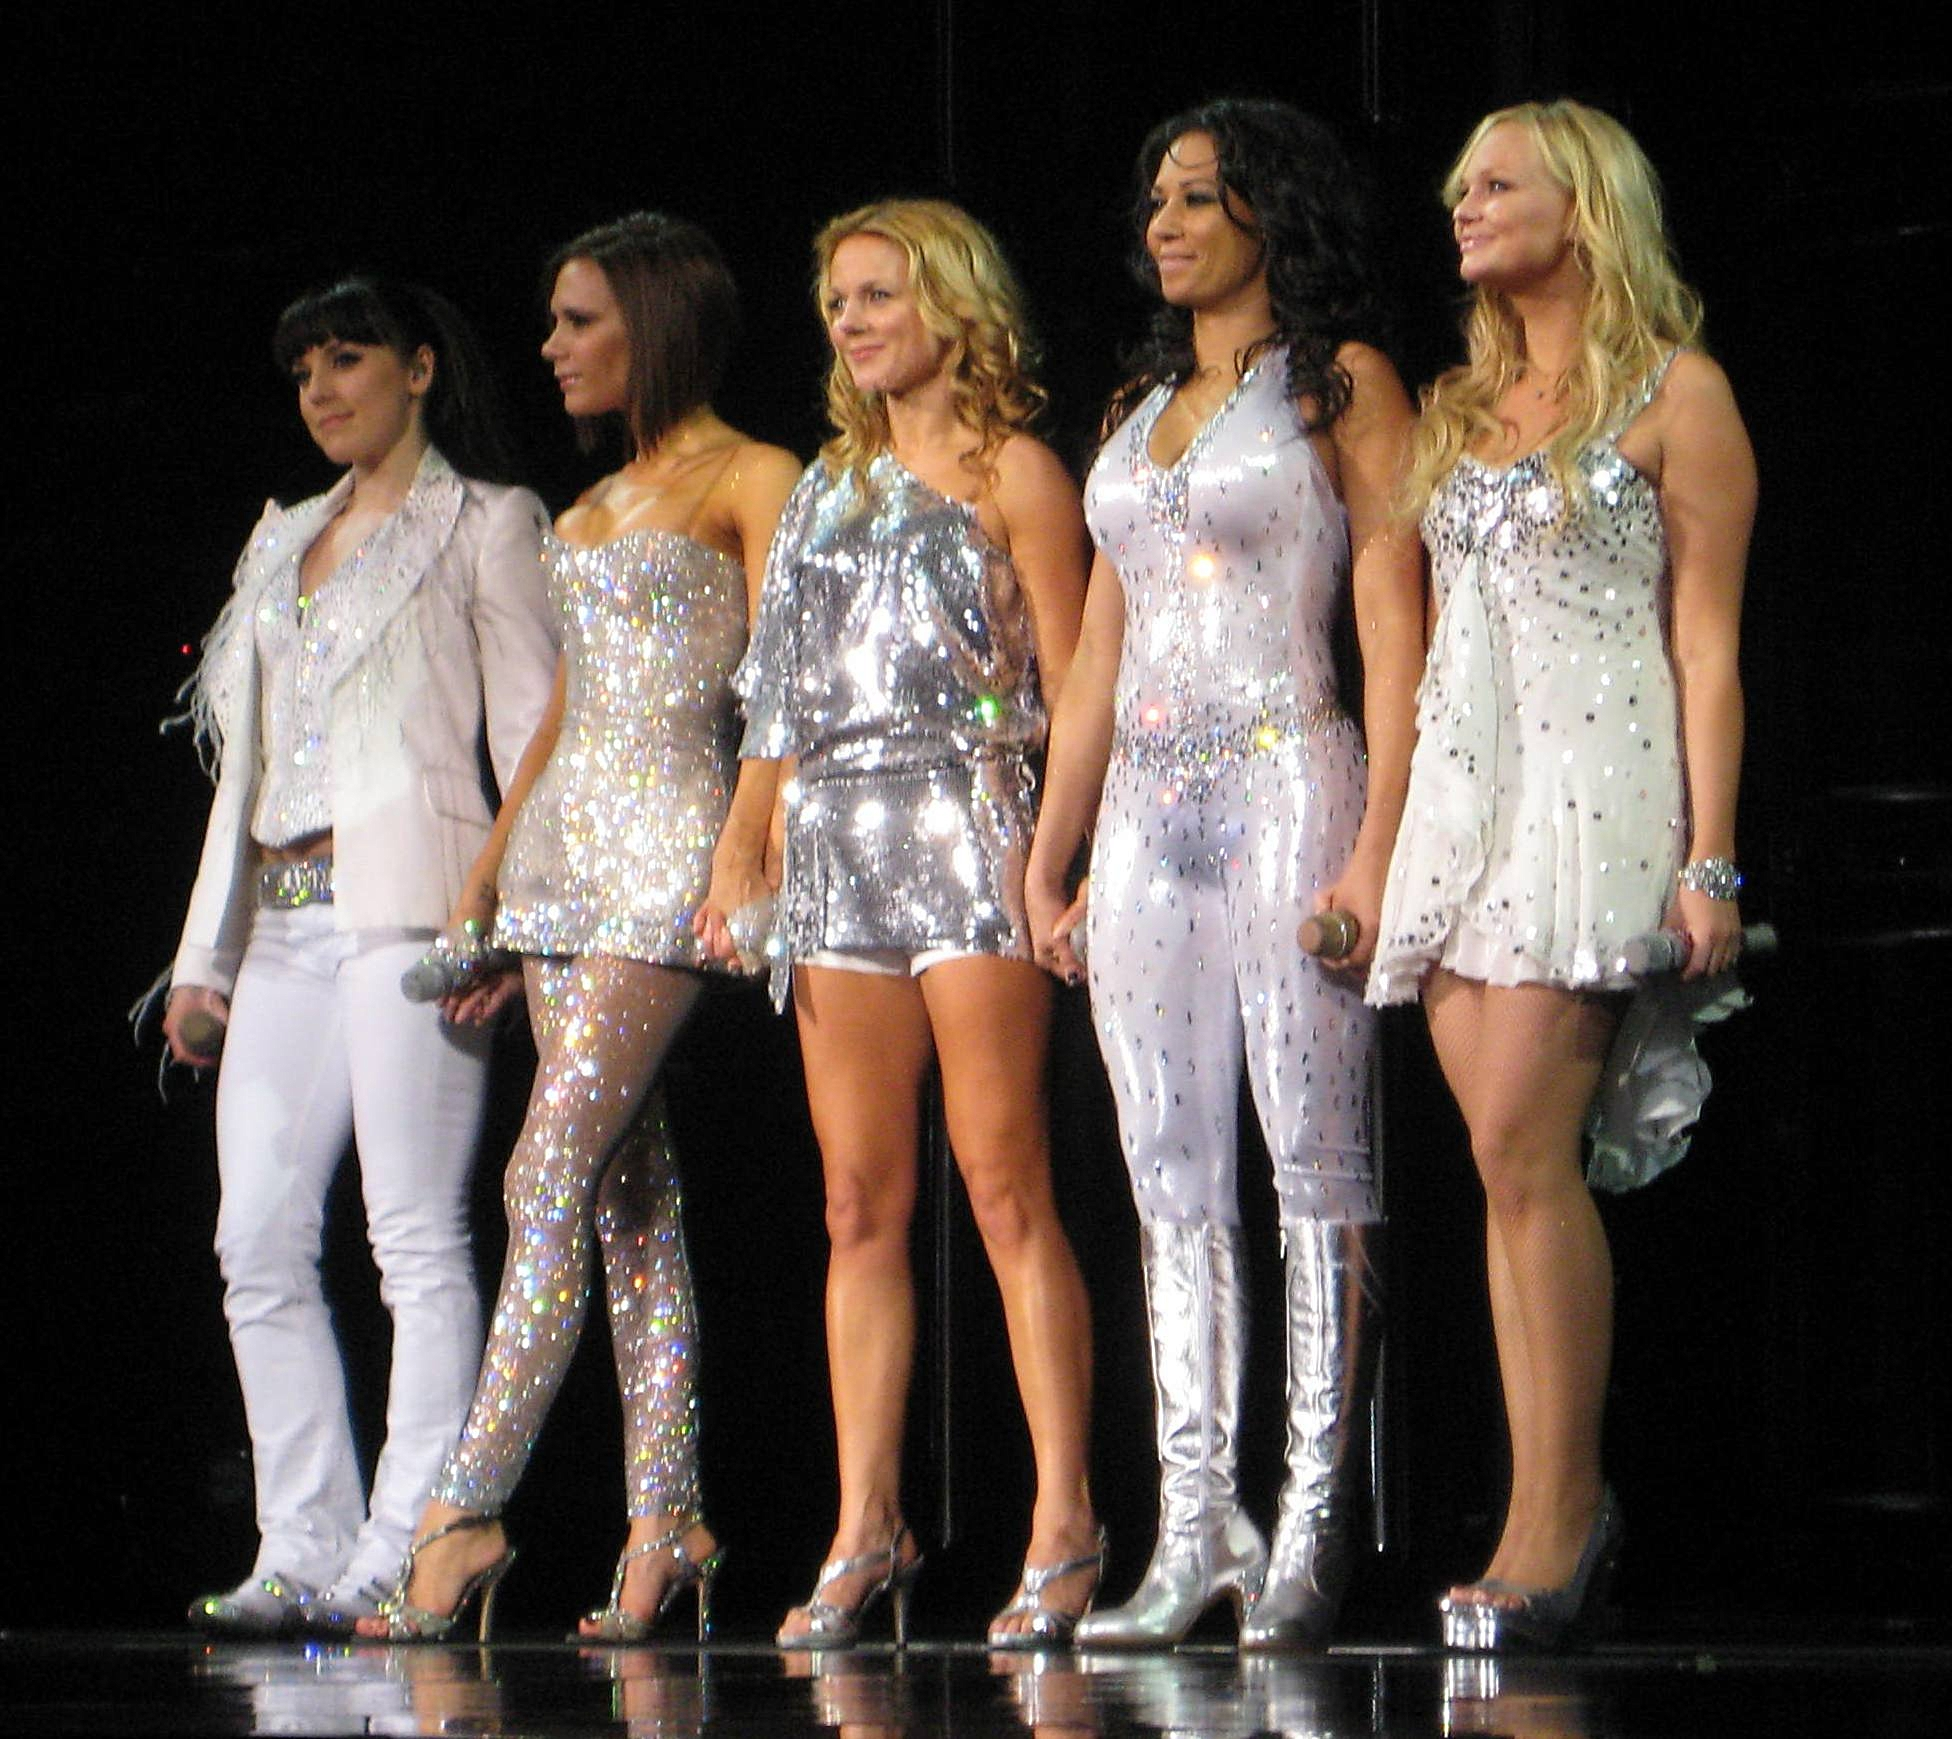 Dancing with The Stars DWTS Season 30 Are The Spice Girls Going to Reunite?